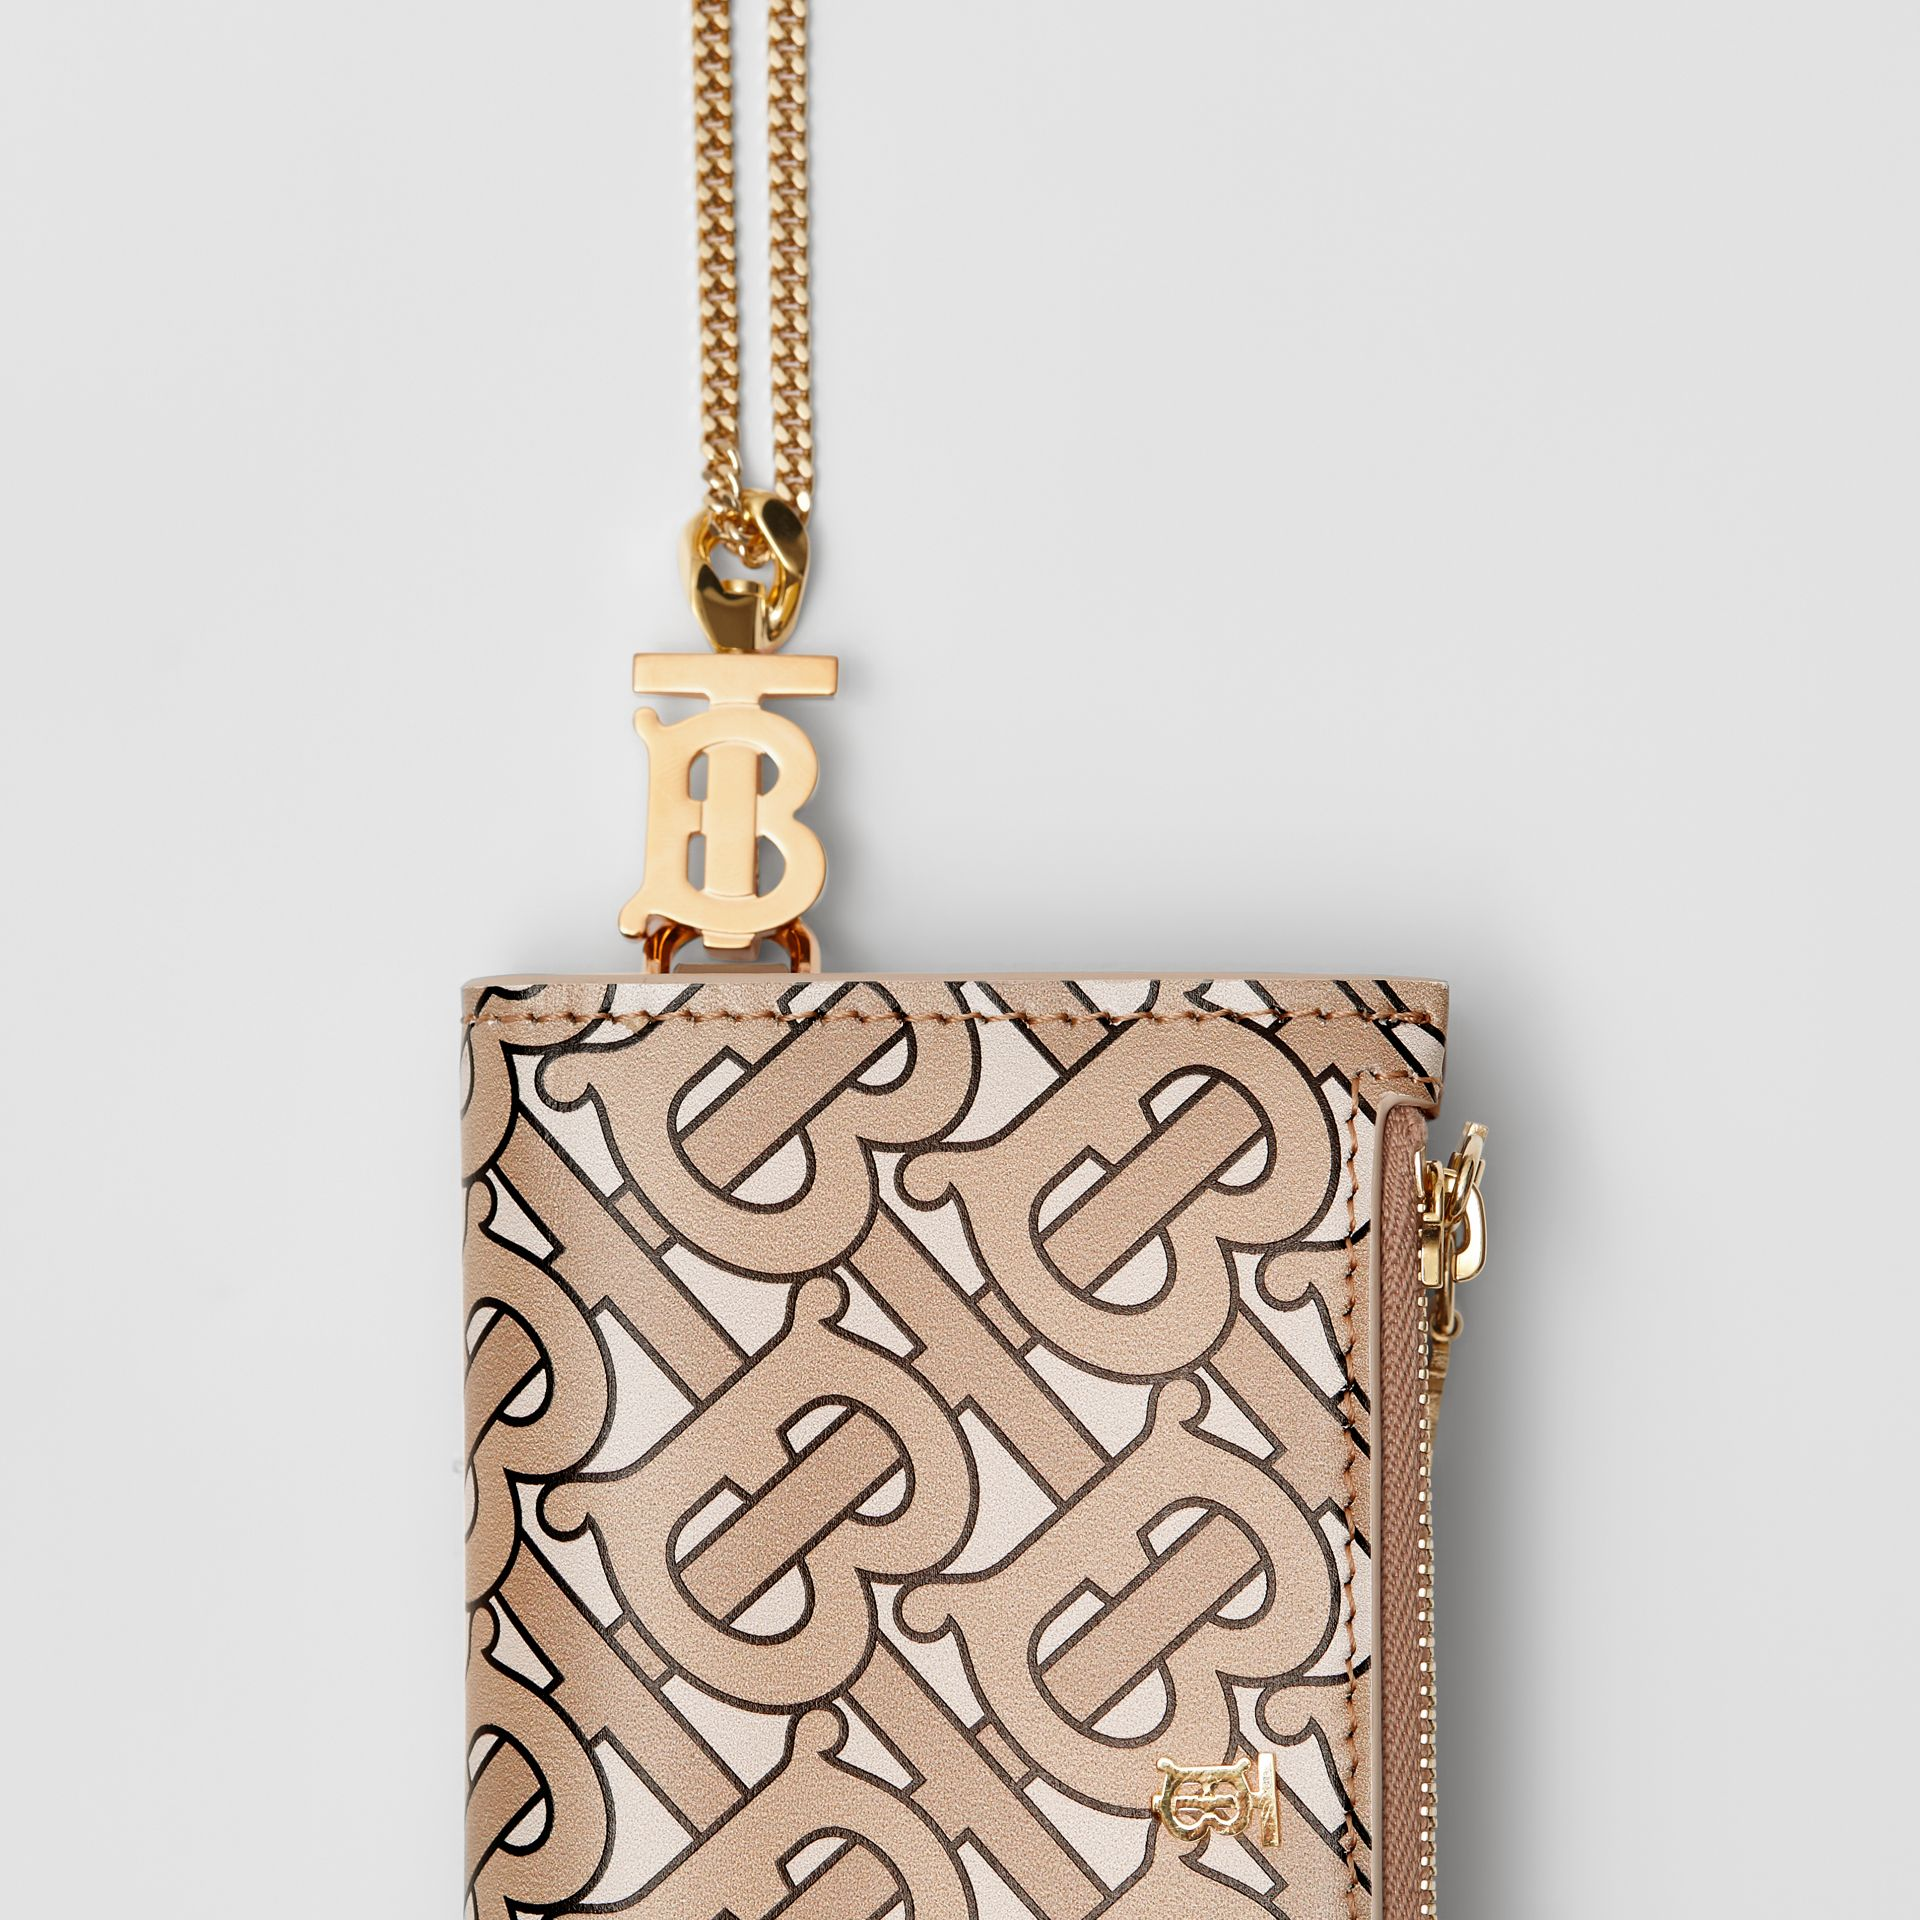 Monogram Motif Leather Wallet with Detachable Strap in Beige - Women | Burberry Australia - gallery image 1